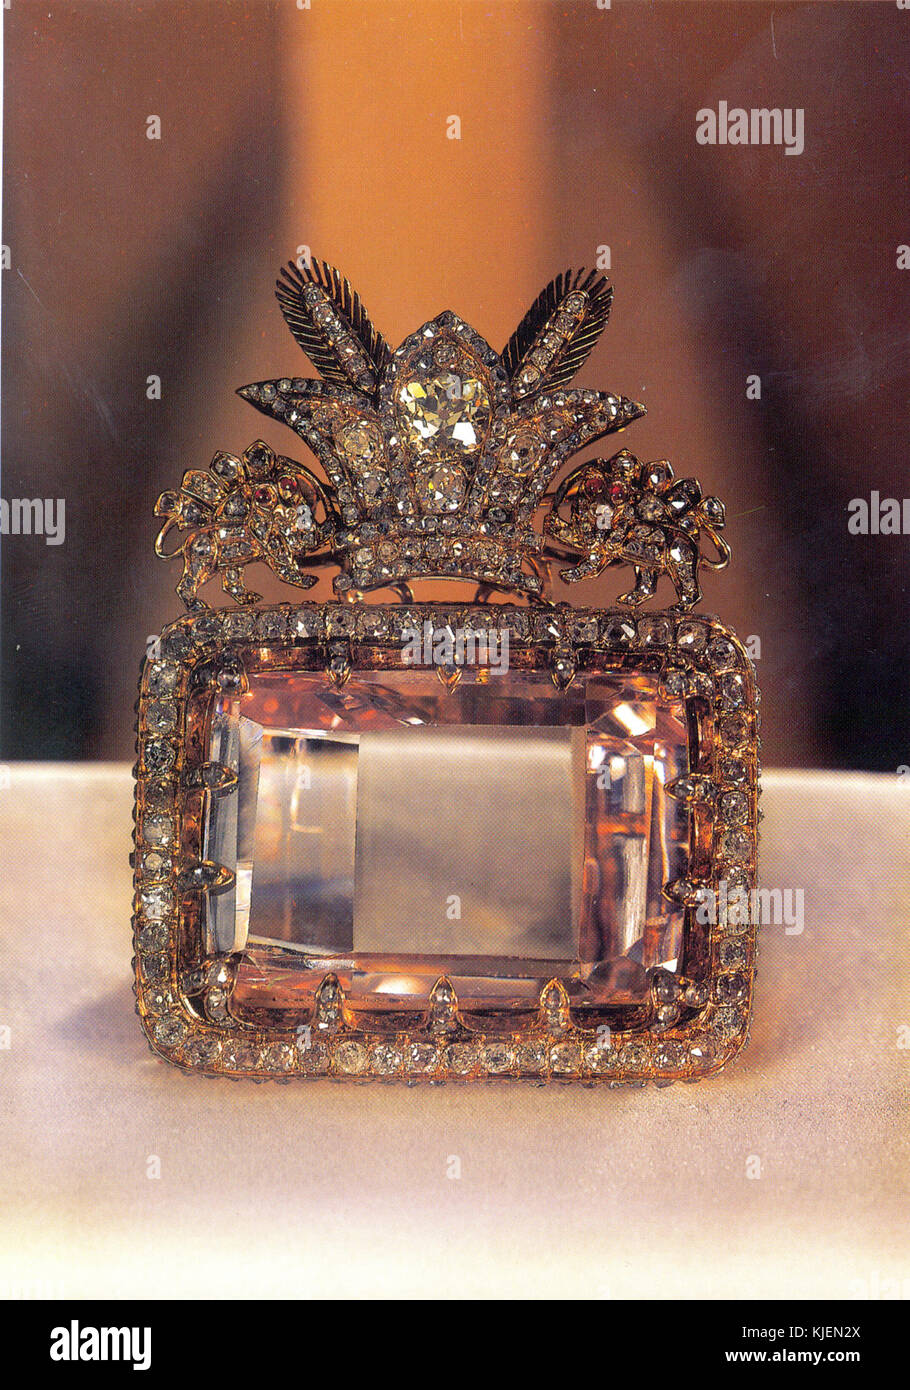 The Daria e Noor (Sea of Light) Diamond from the collection of the national jewels of Iran at Central Bank of Islamic Stock Photo